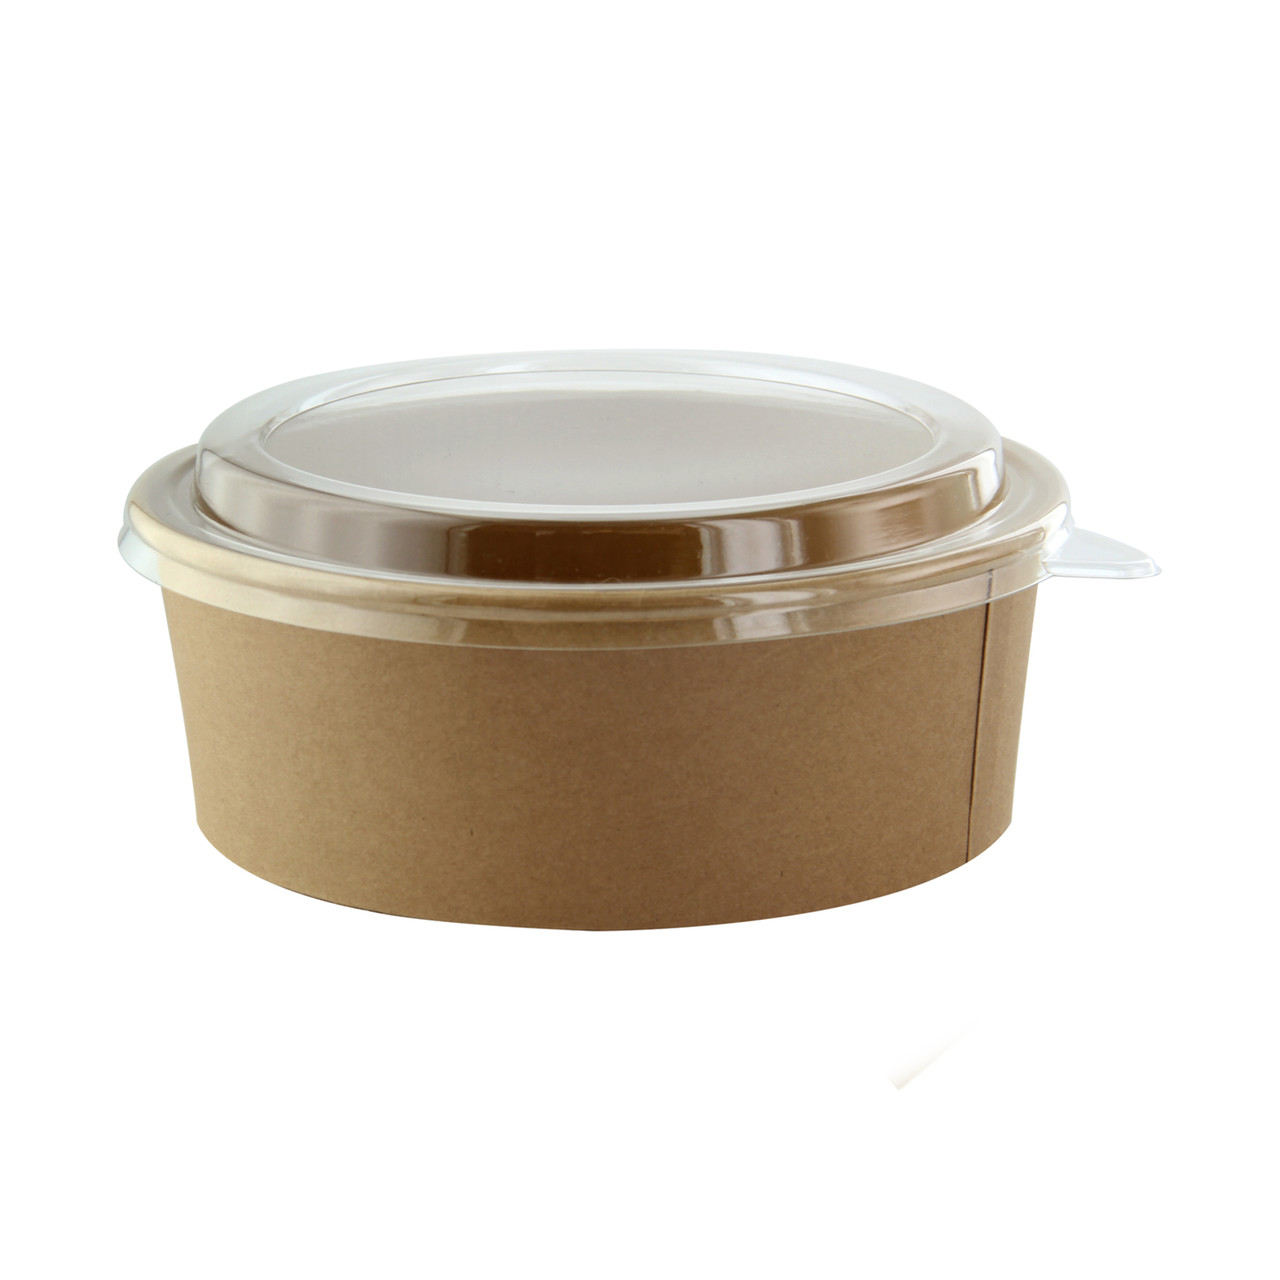 Round Kraft Salad Bucket With Pet Lid Included -40oz Dia:7.2in H:2.7in